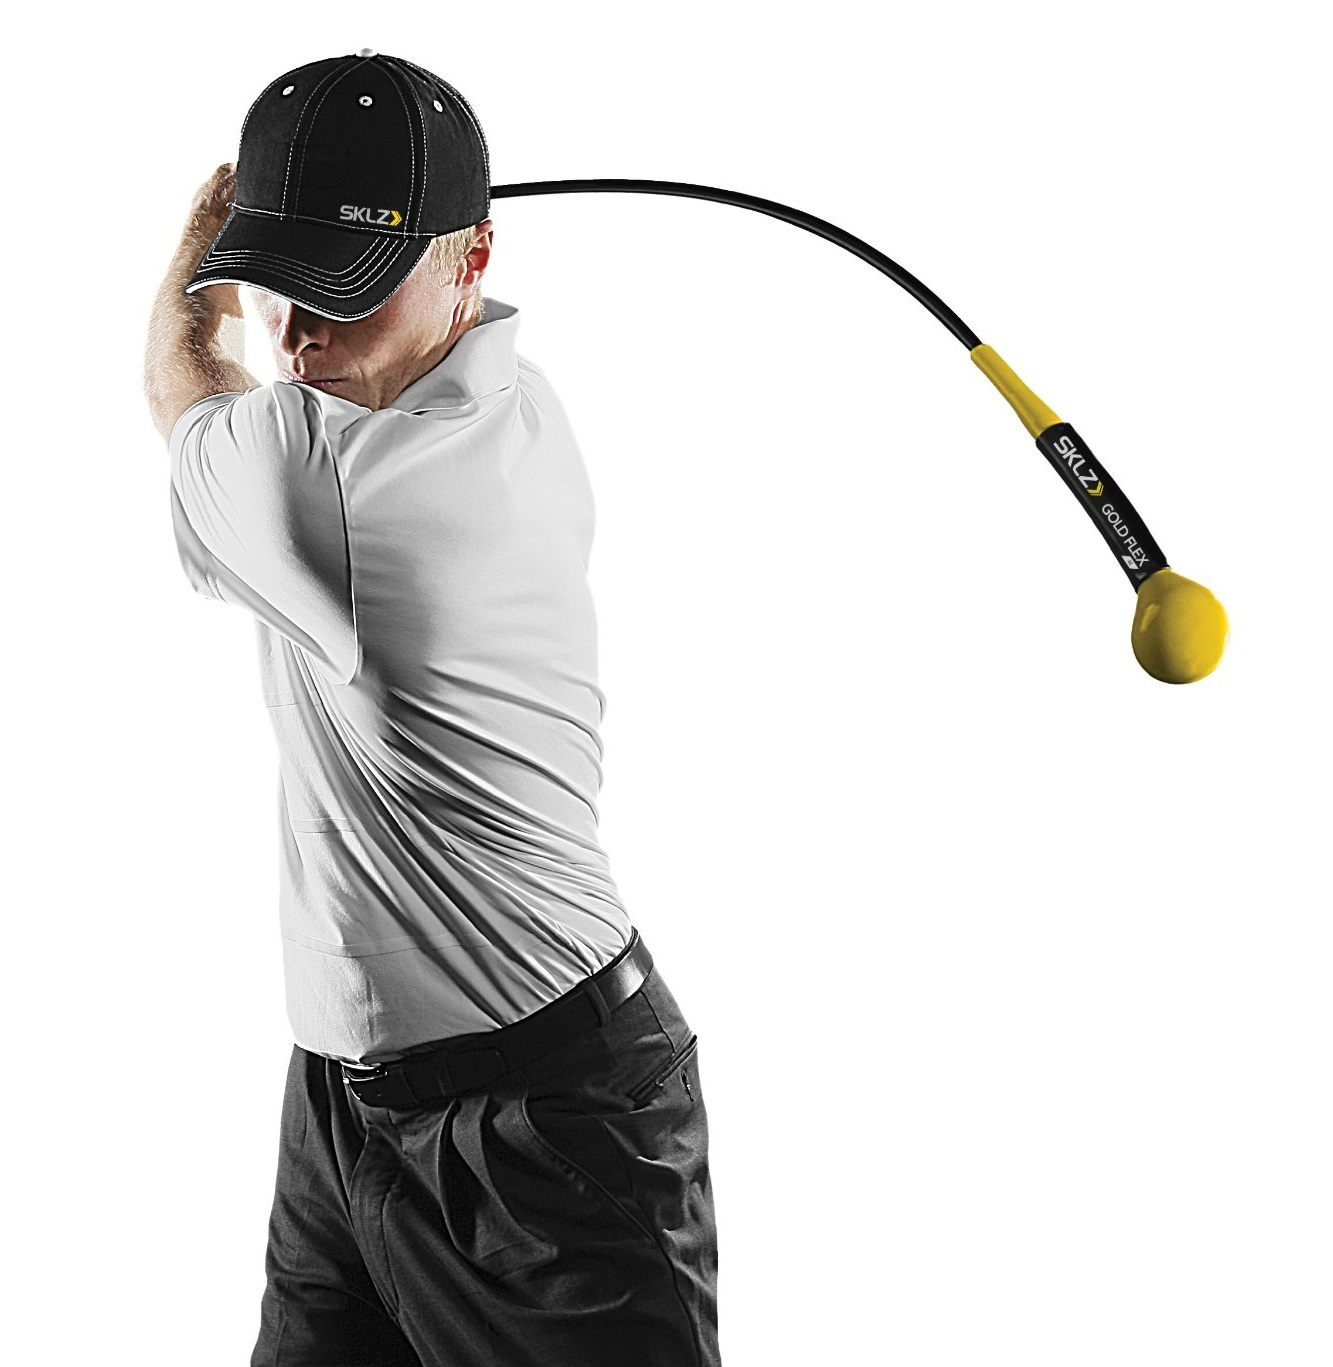 Buy Best Golf Swing Training Aids For Lowest Prices